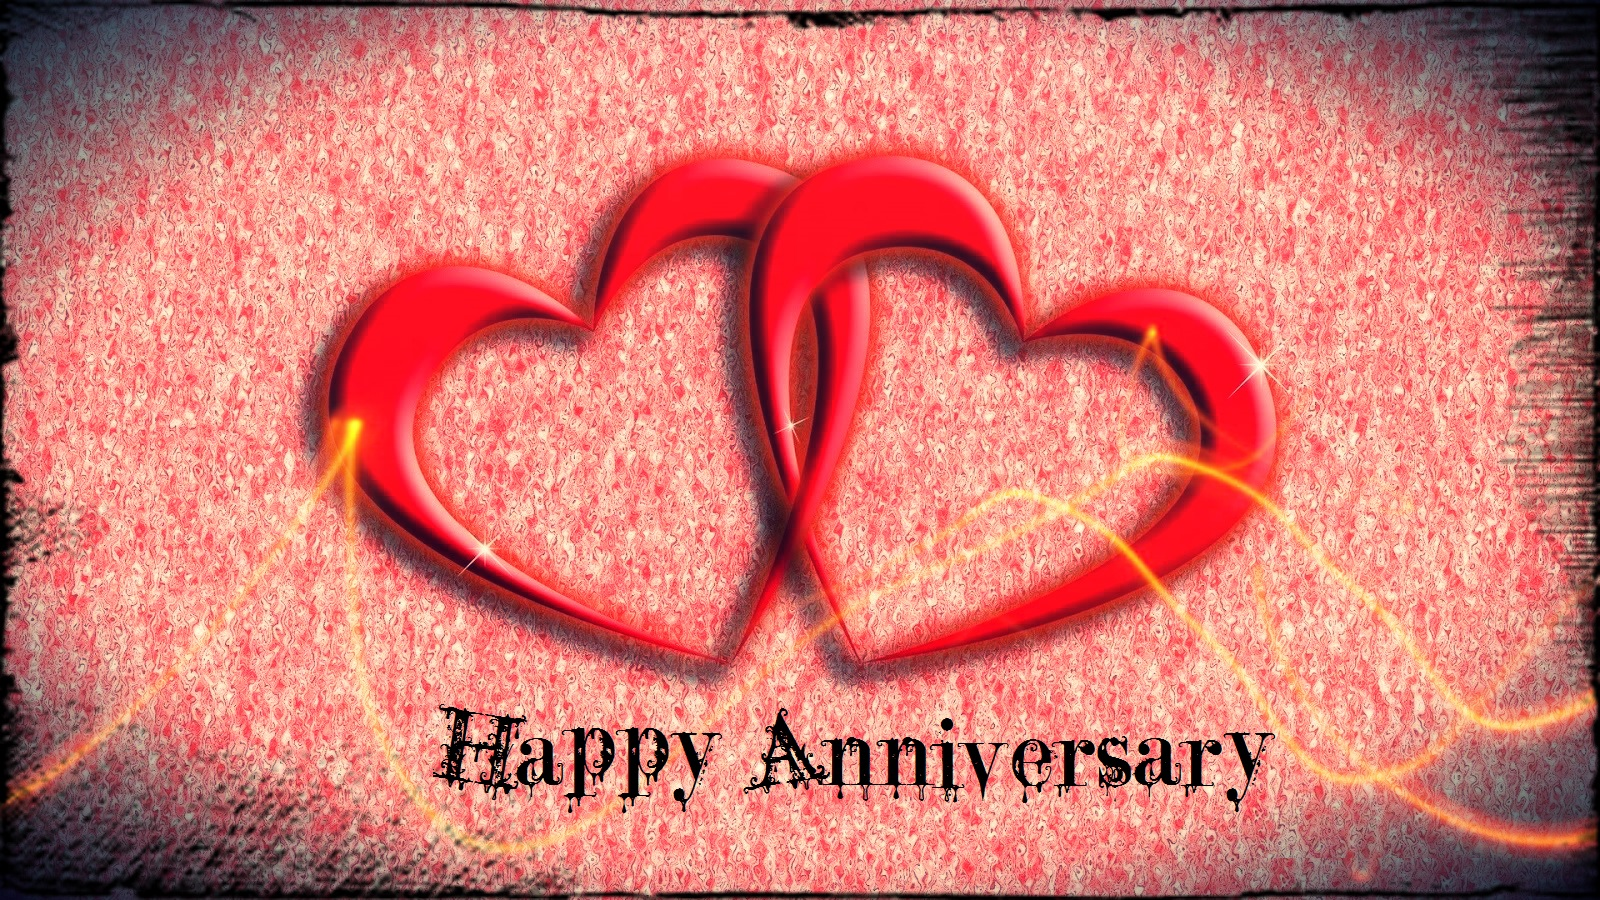 Happy anniversary quotes for facebook quotesgram